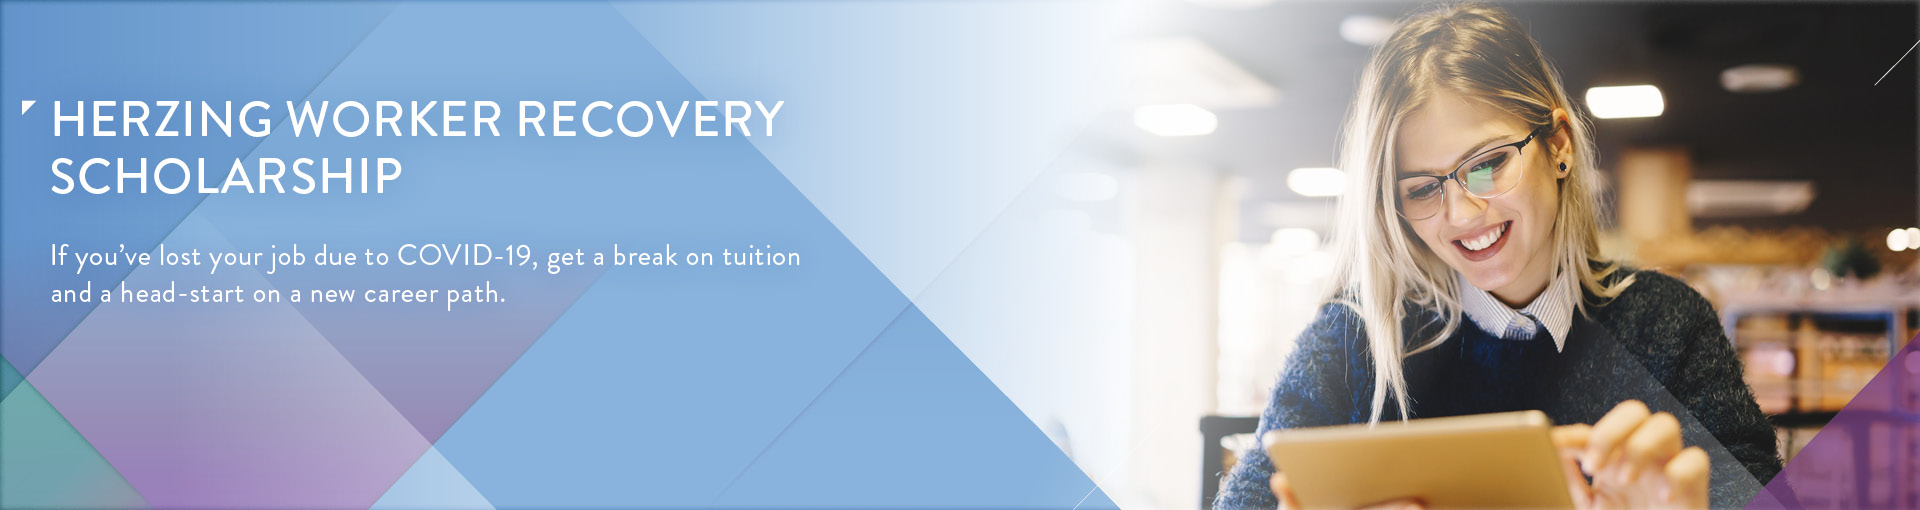 Web Slider Template_Worker Recovery Scholarship